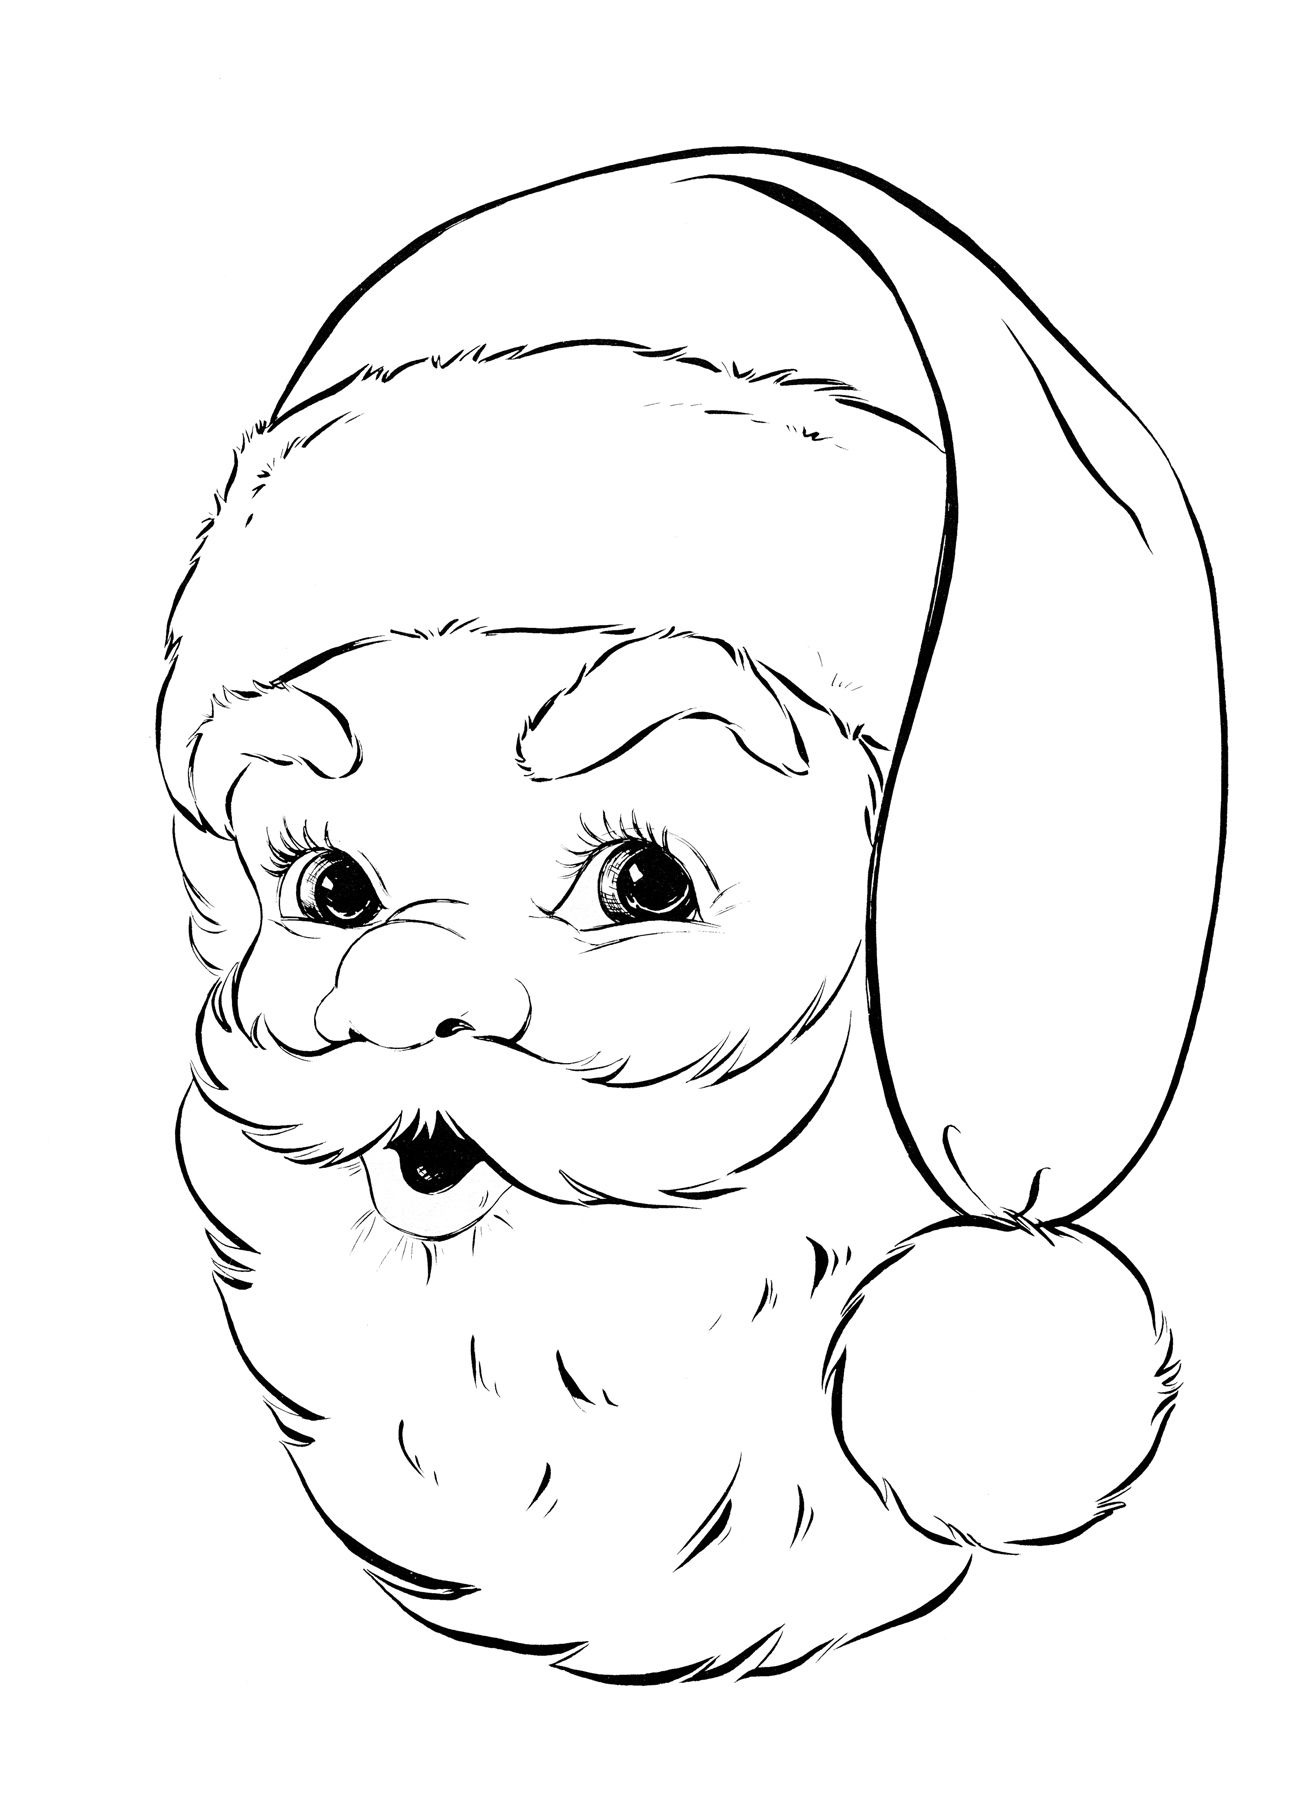 Santa Head Coloring Sheet With 50 Free Activities For Children Digi Stamps Pinterest